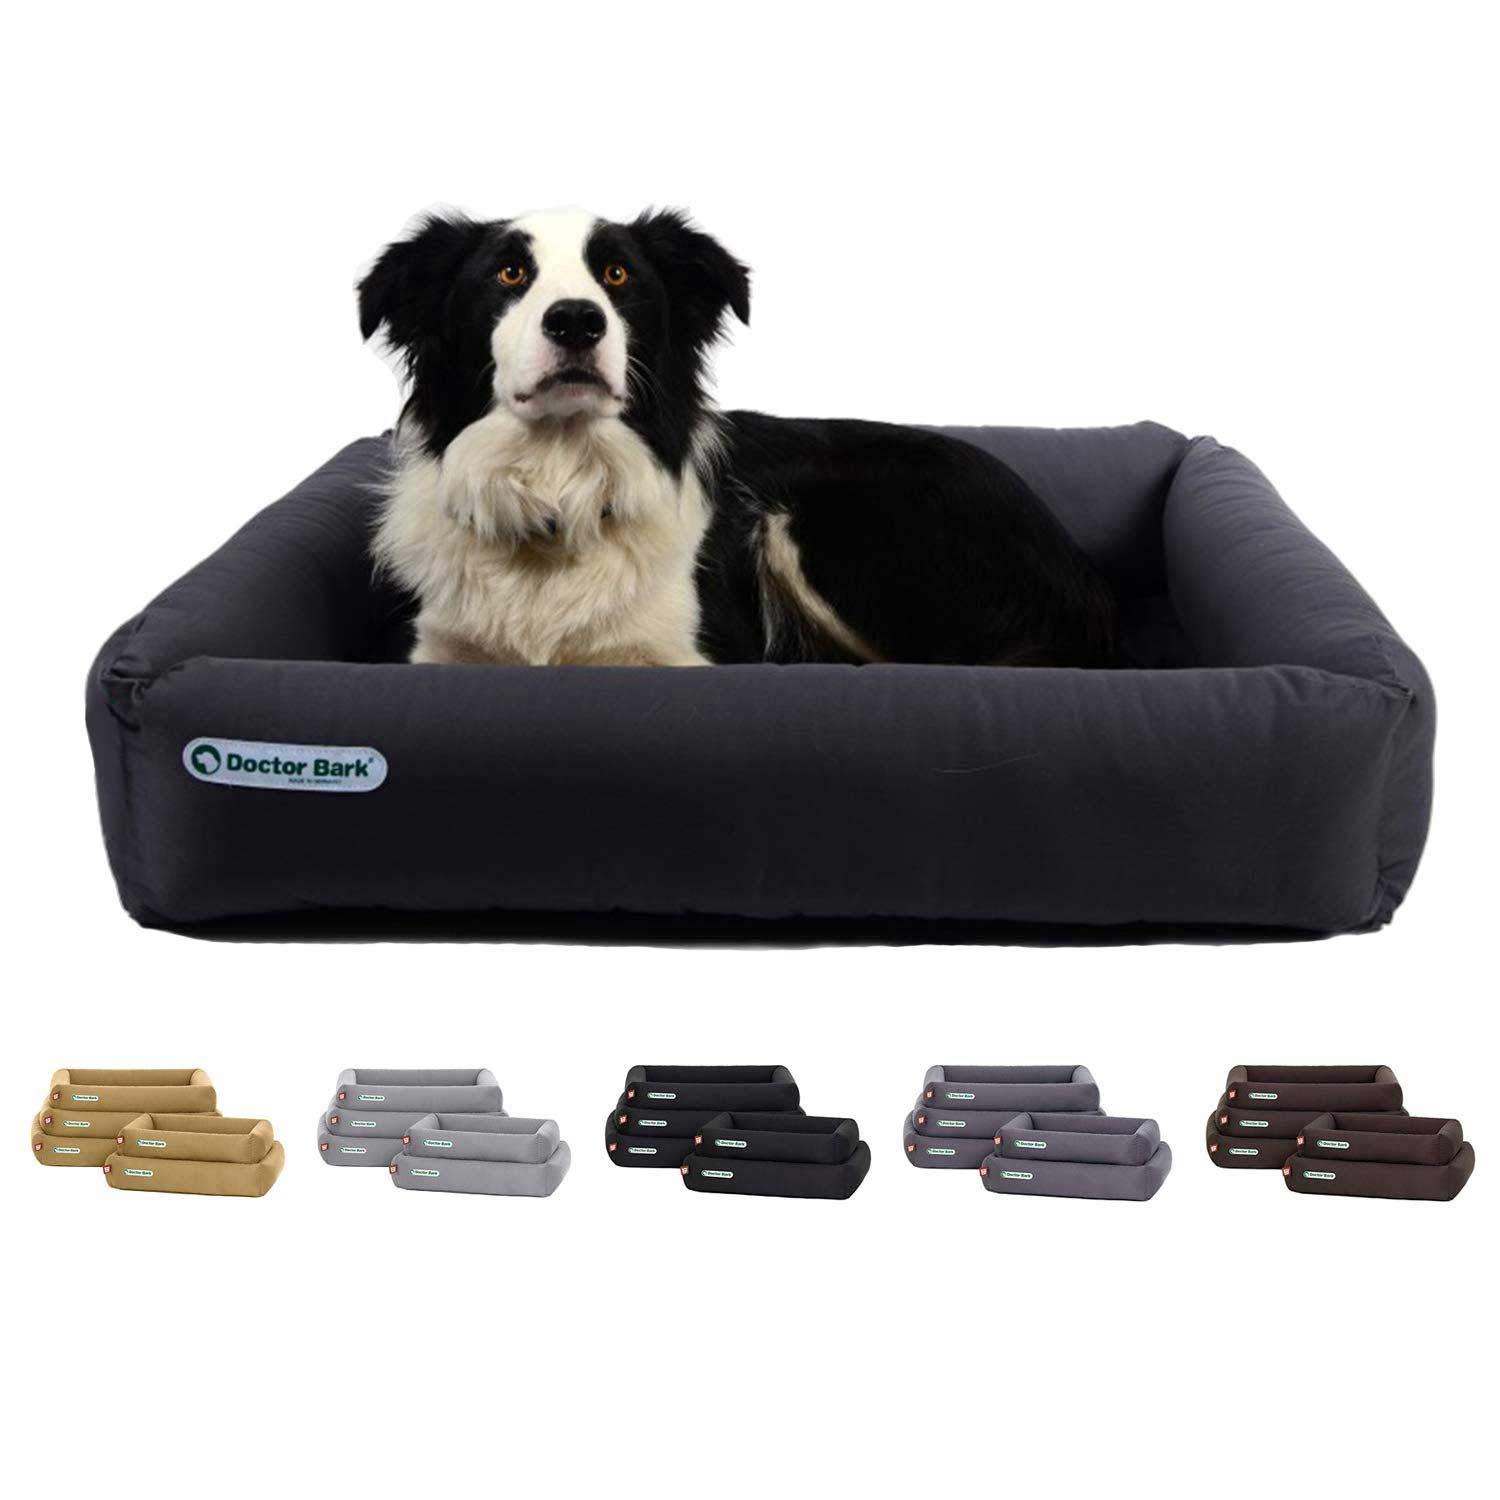 Grey Large   31x27x6\ Grey Large   31x27x6\ Doctor Bark Dog Bed Made in Germany   Deluxe Orthopedic Bed + Cushion   Washable up to 200°F   Suitable for dryers   Premium Quality   Suitable for allergics   Developed by Veterinarians